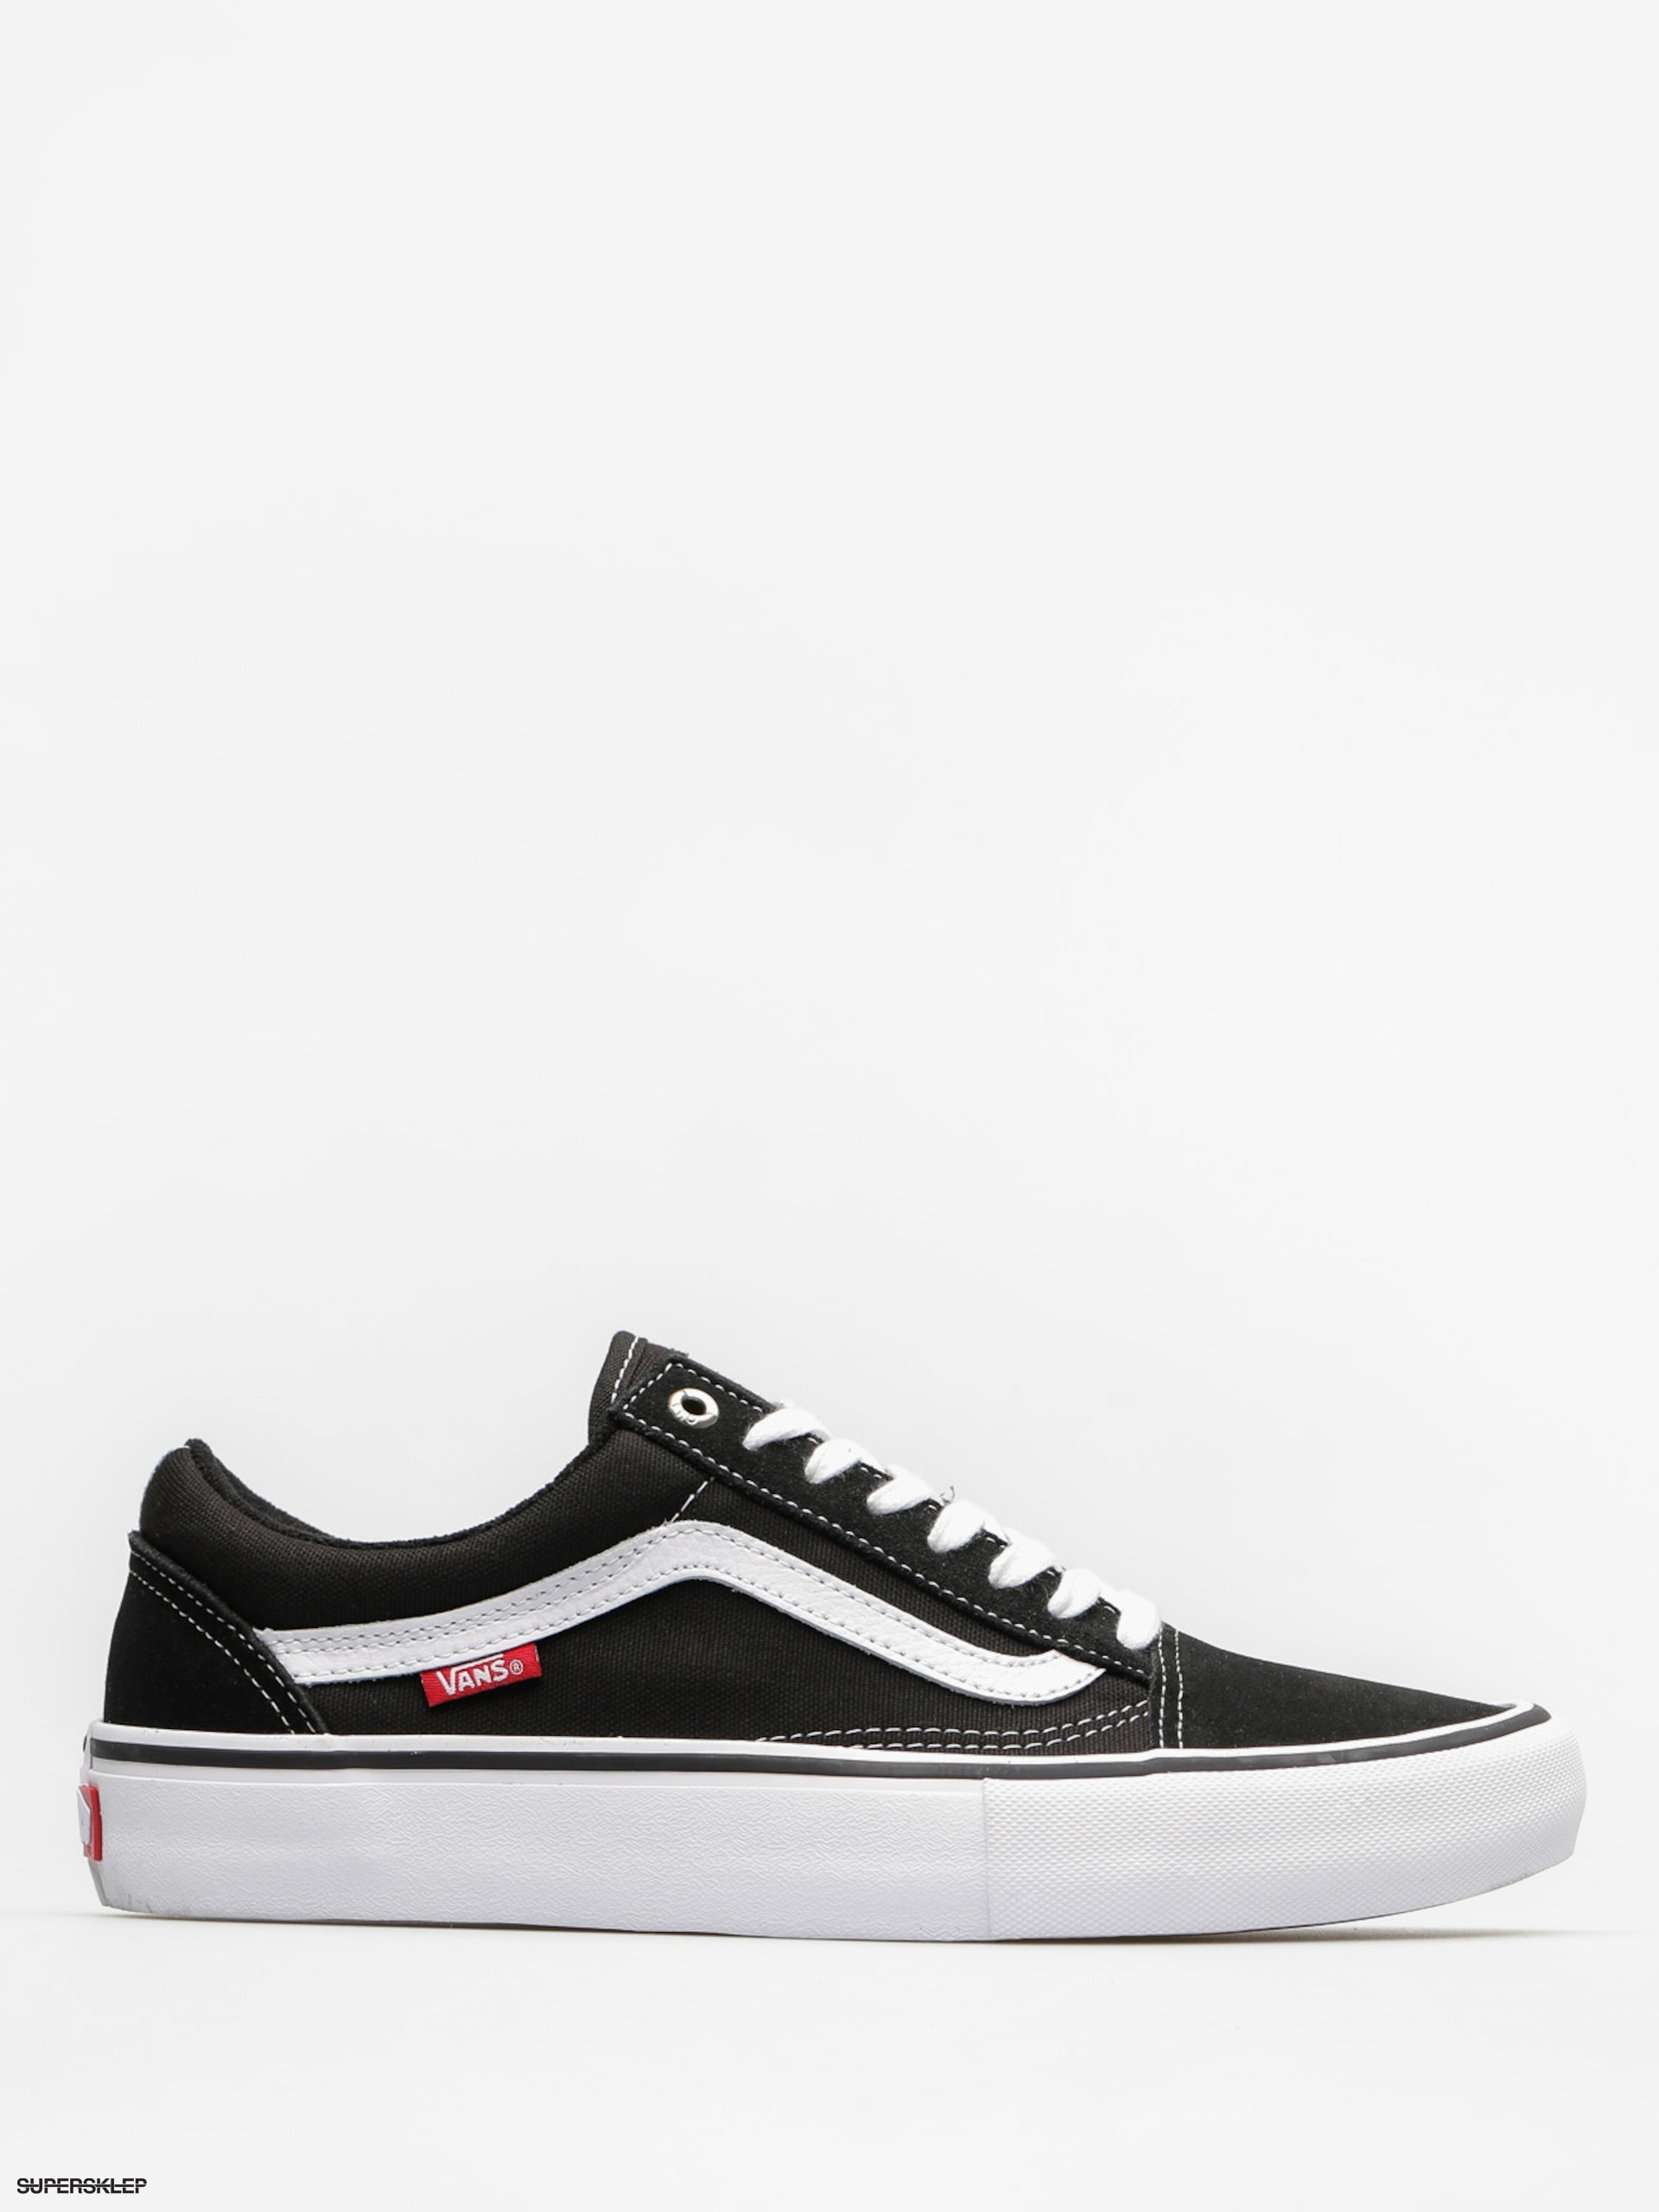 47b1848ccaa58 Buty Vans Old Skool Pro (black/white)